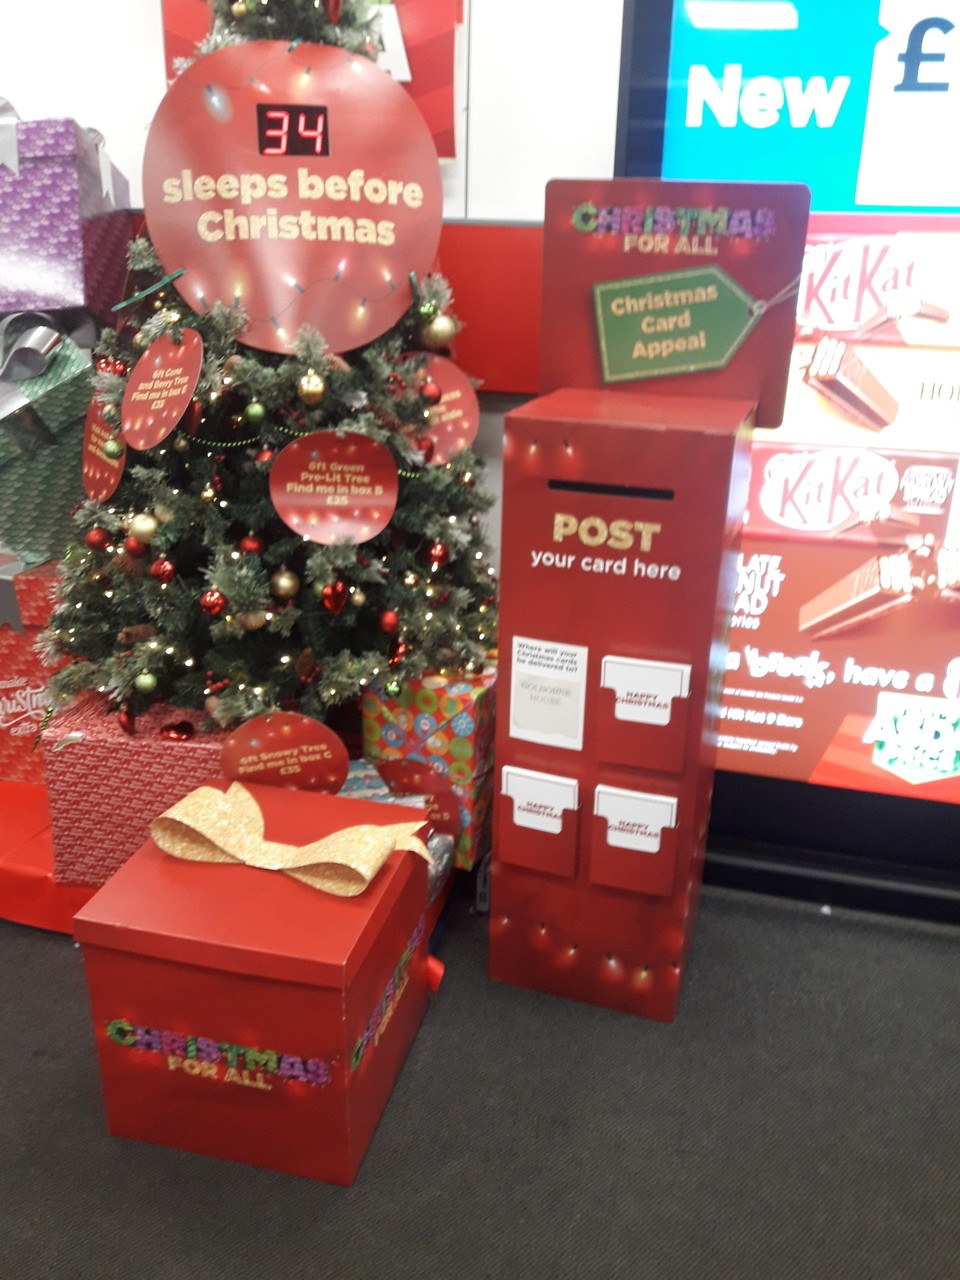 Christmas card appeal  | Asda Golborne